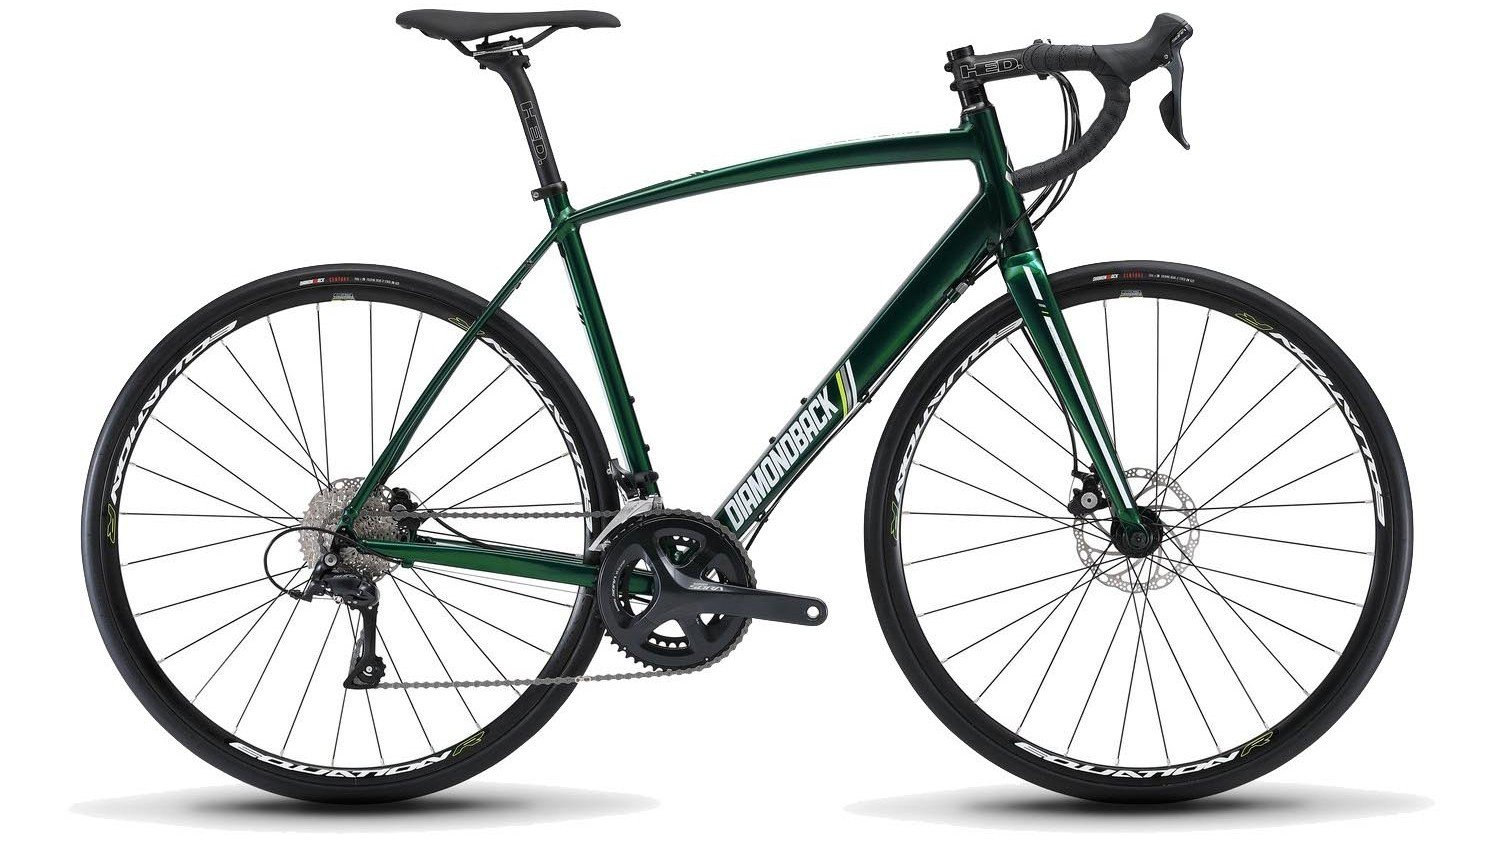 db3a54770cb Best Entry-Level Road Bikes for Beginners - How to Choose And What ...